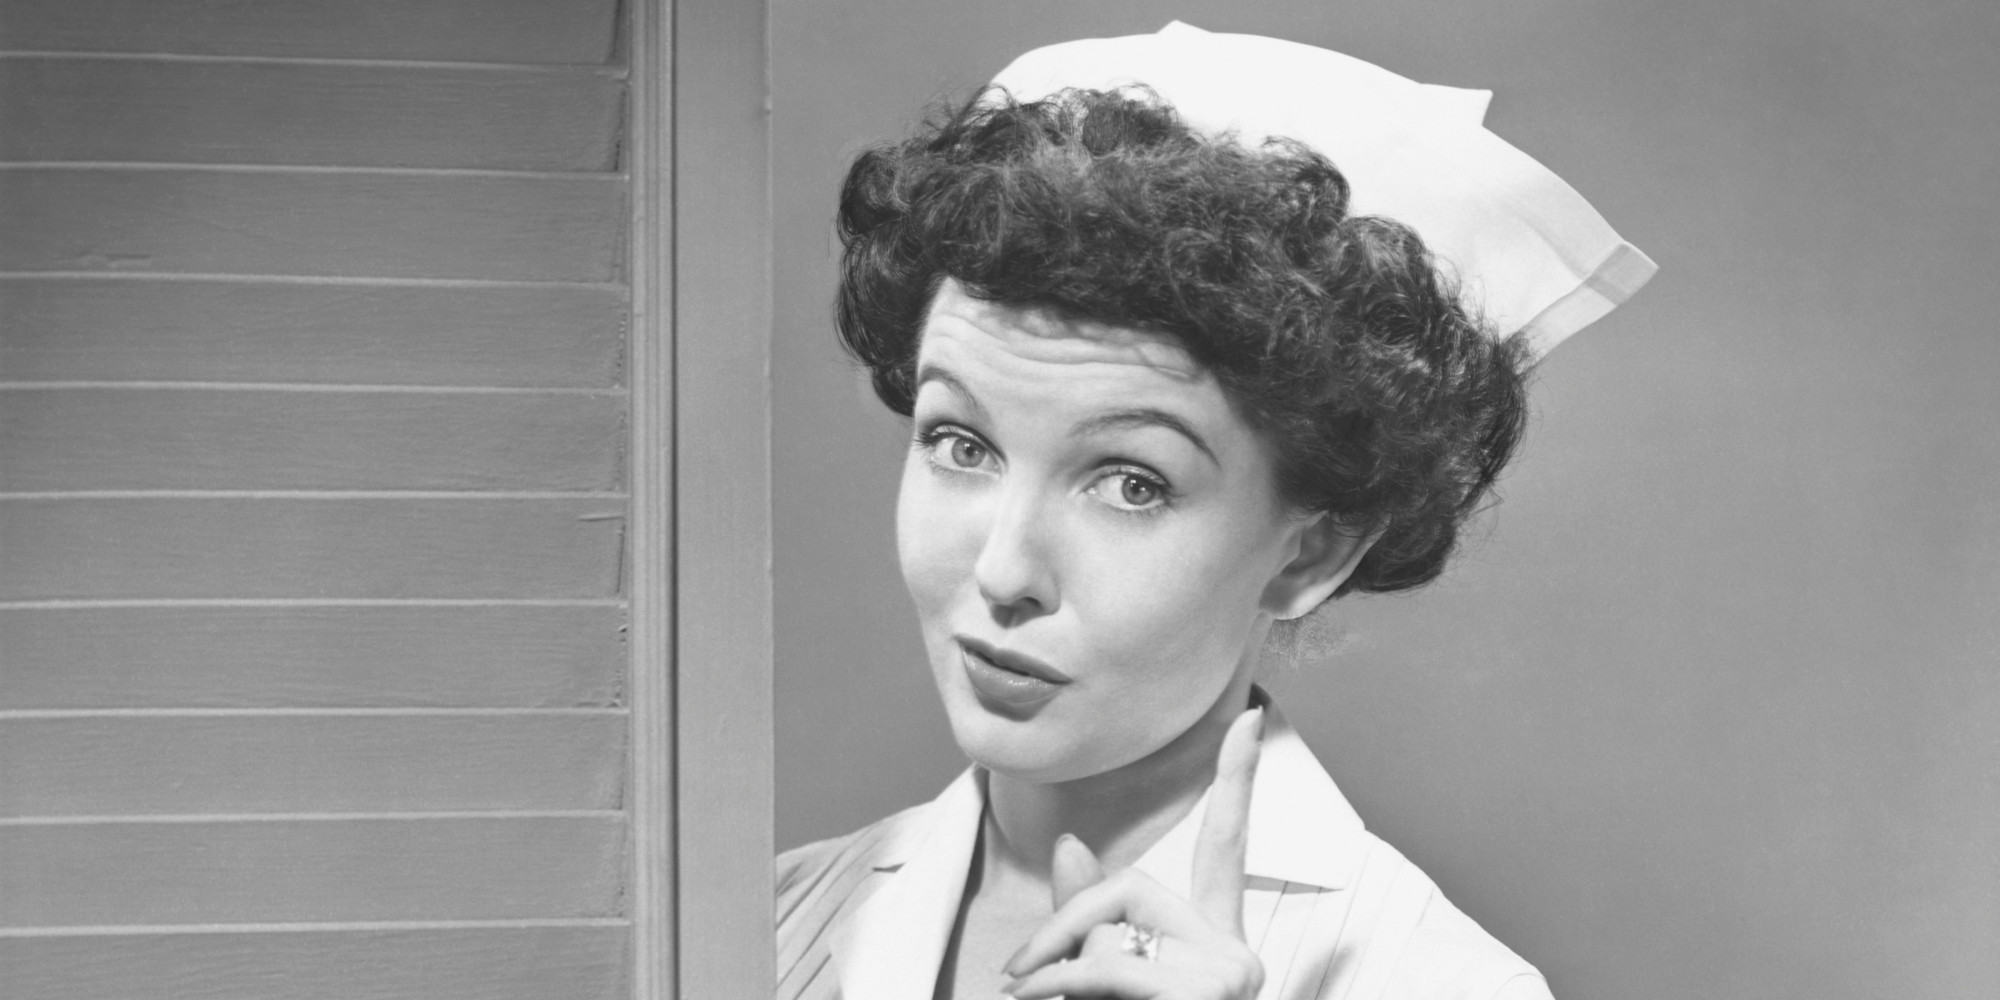 This 1950s Women's Health Tutorial Is Utterly Appalling